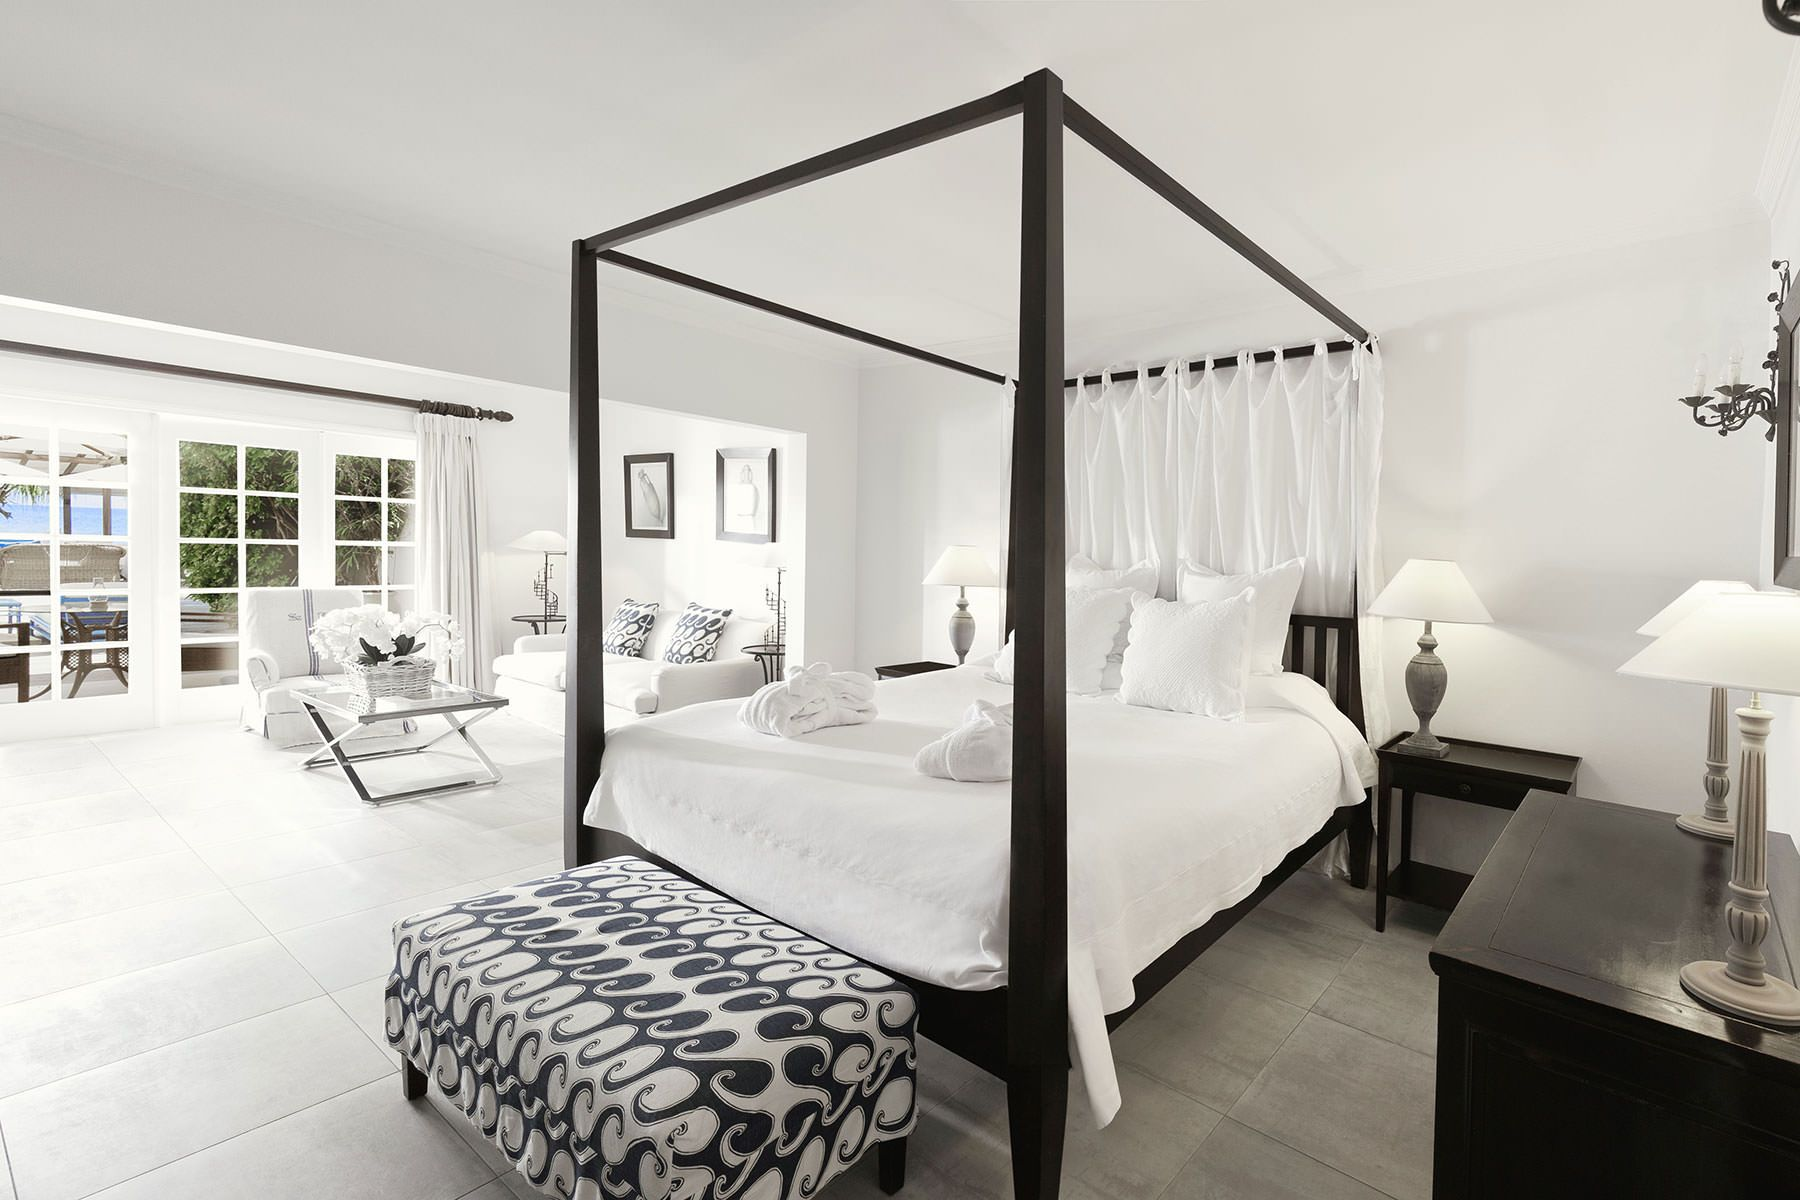 5 star master bedrooms  Cheval Blanc St Barth Isle de France  Honeymoon Dreams  Pinterest